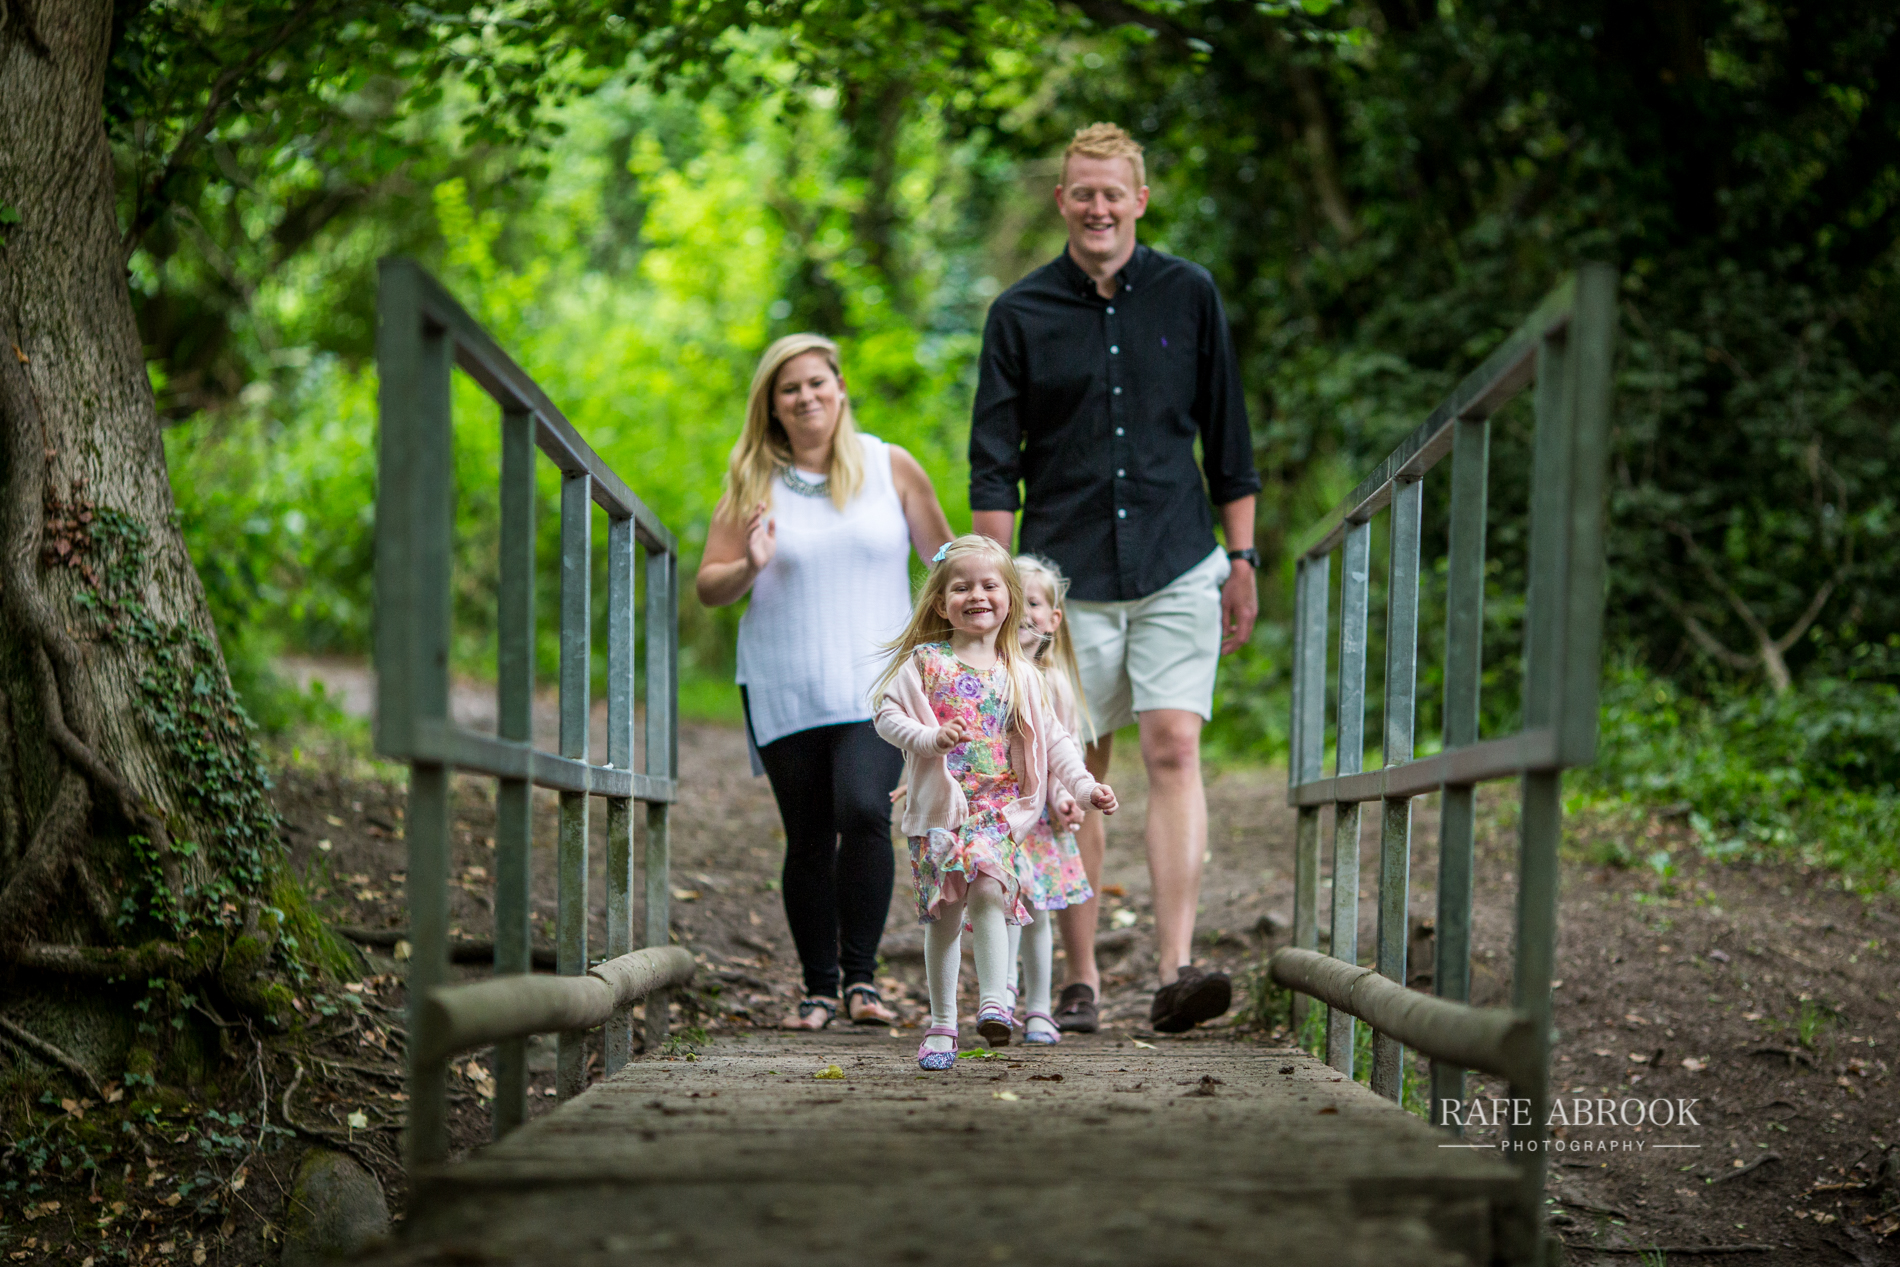 lisa & danny engagement shoot barton hills barton-le-clay bedfordshire-1001.jpg